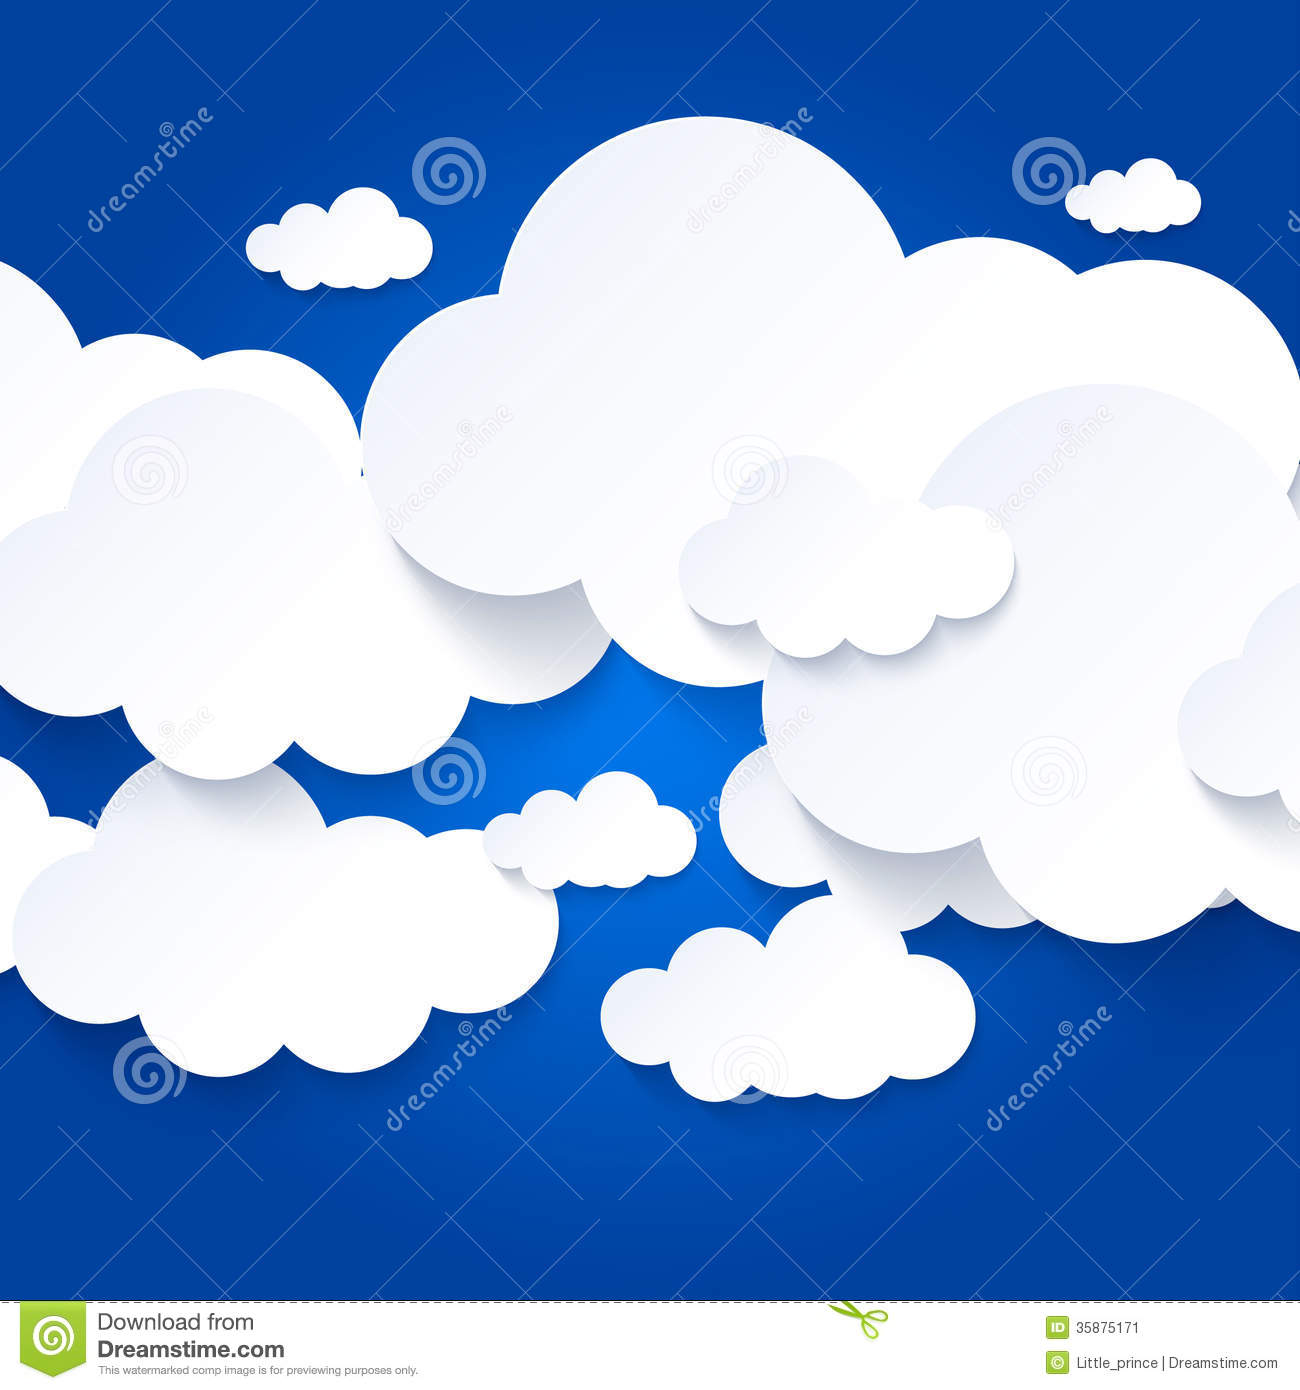 White Clouds On Blue Sky Background Stock Image.